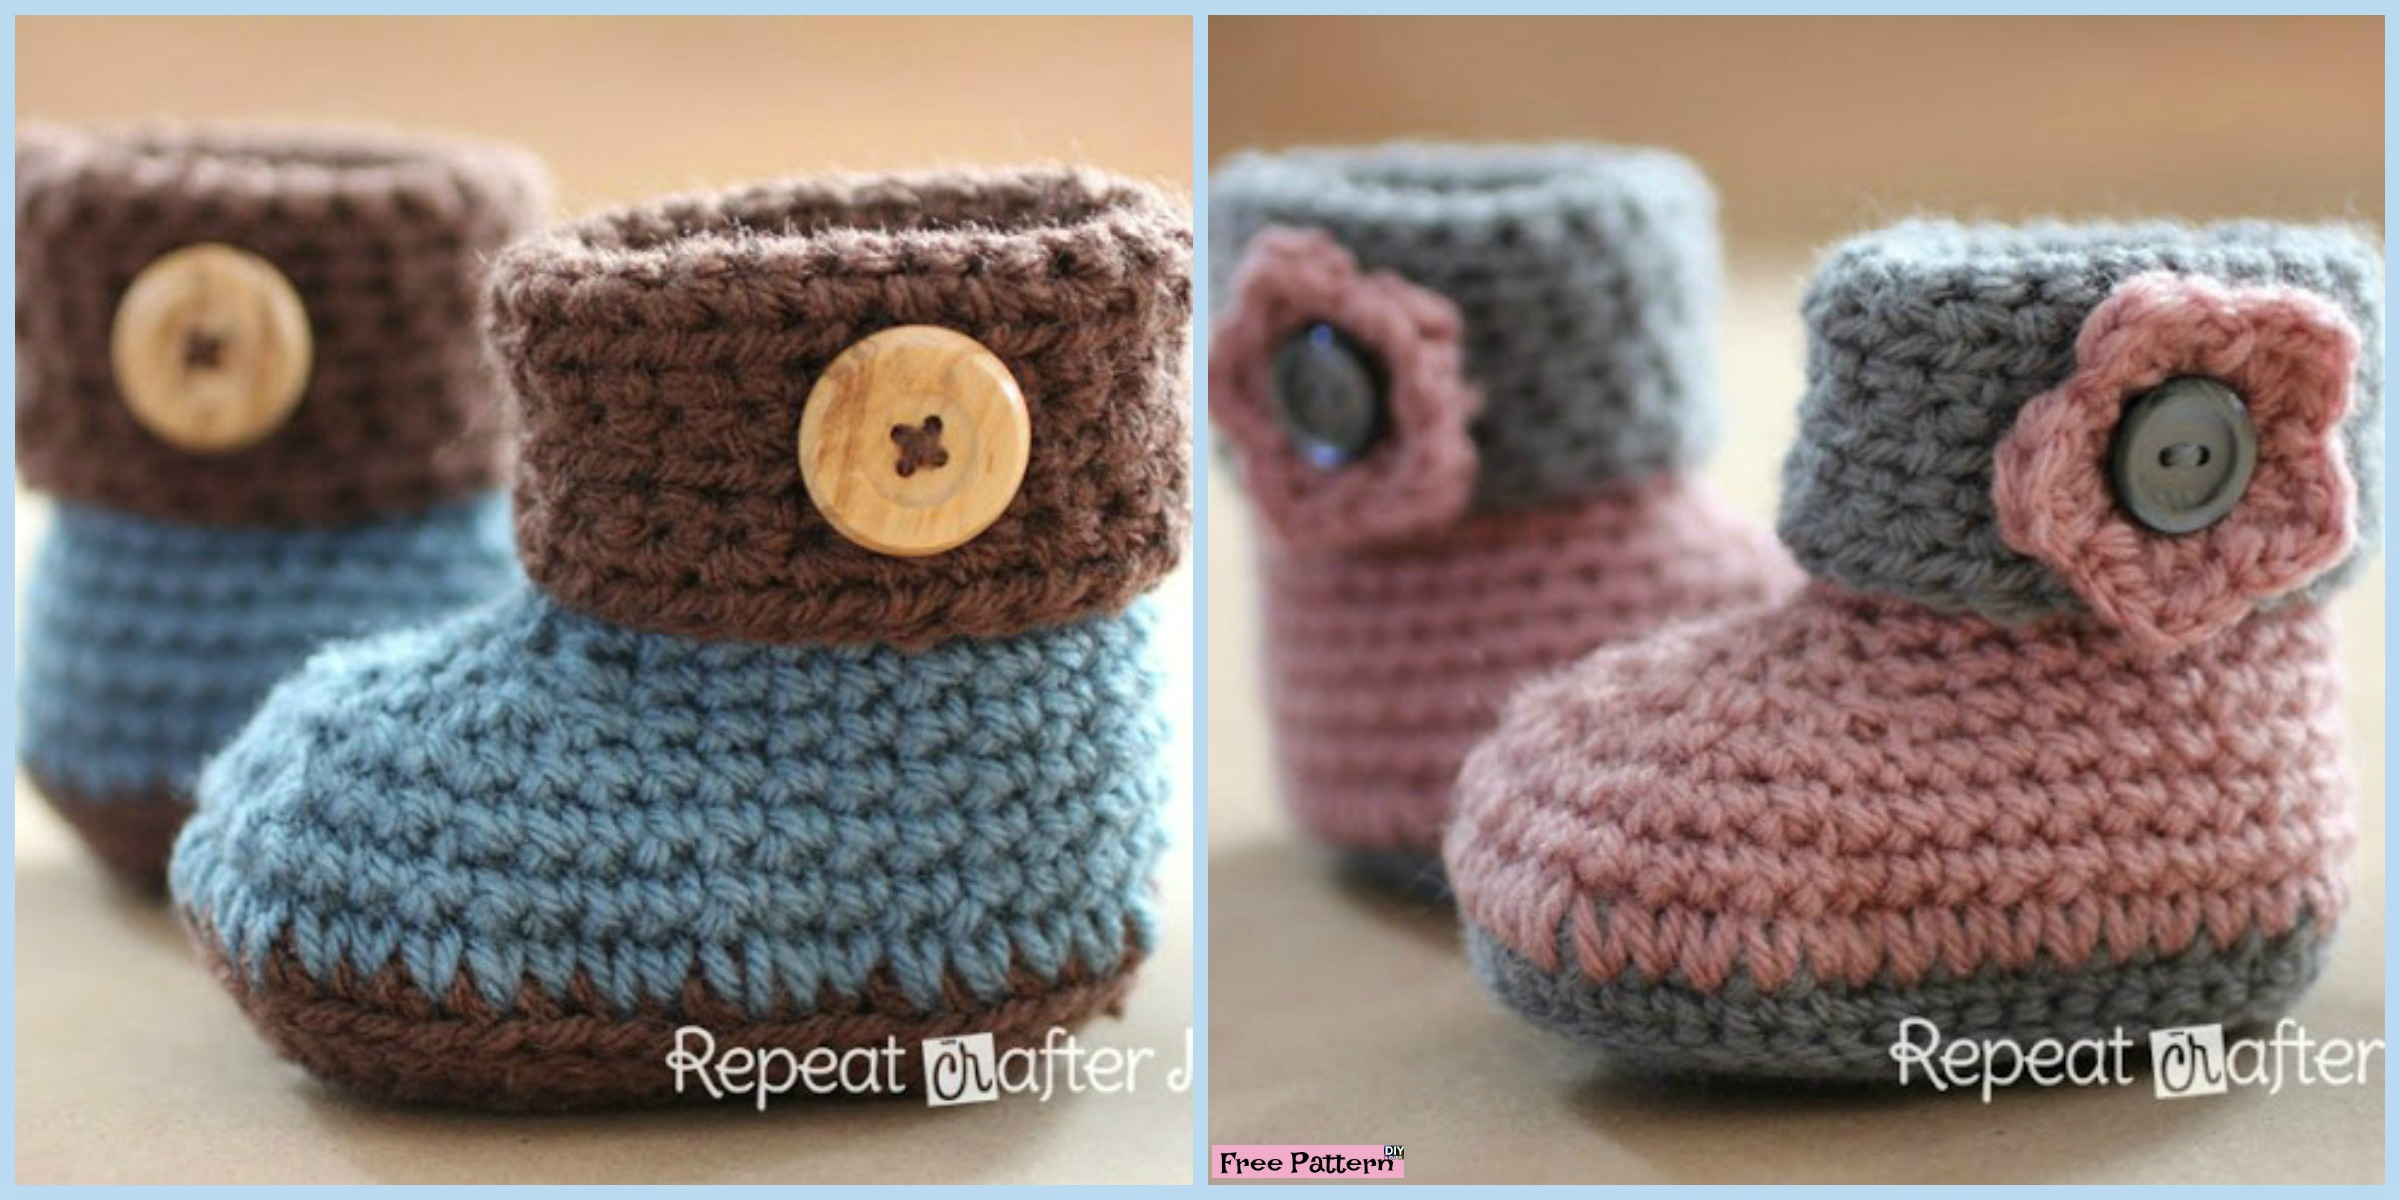 Crochet Cuffed Baby Booties – Free Pattern